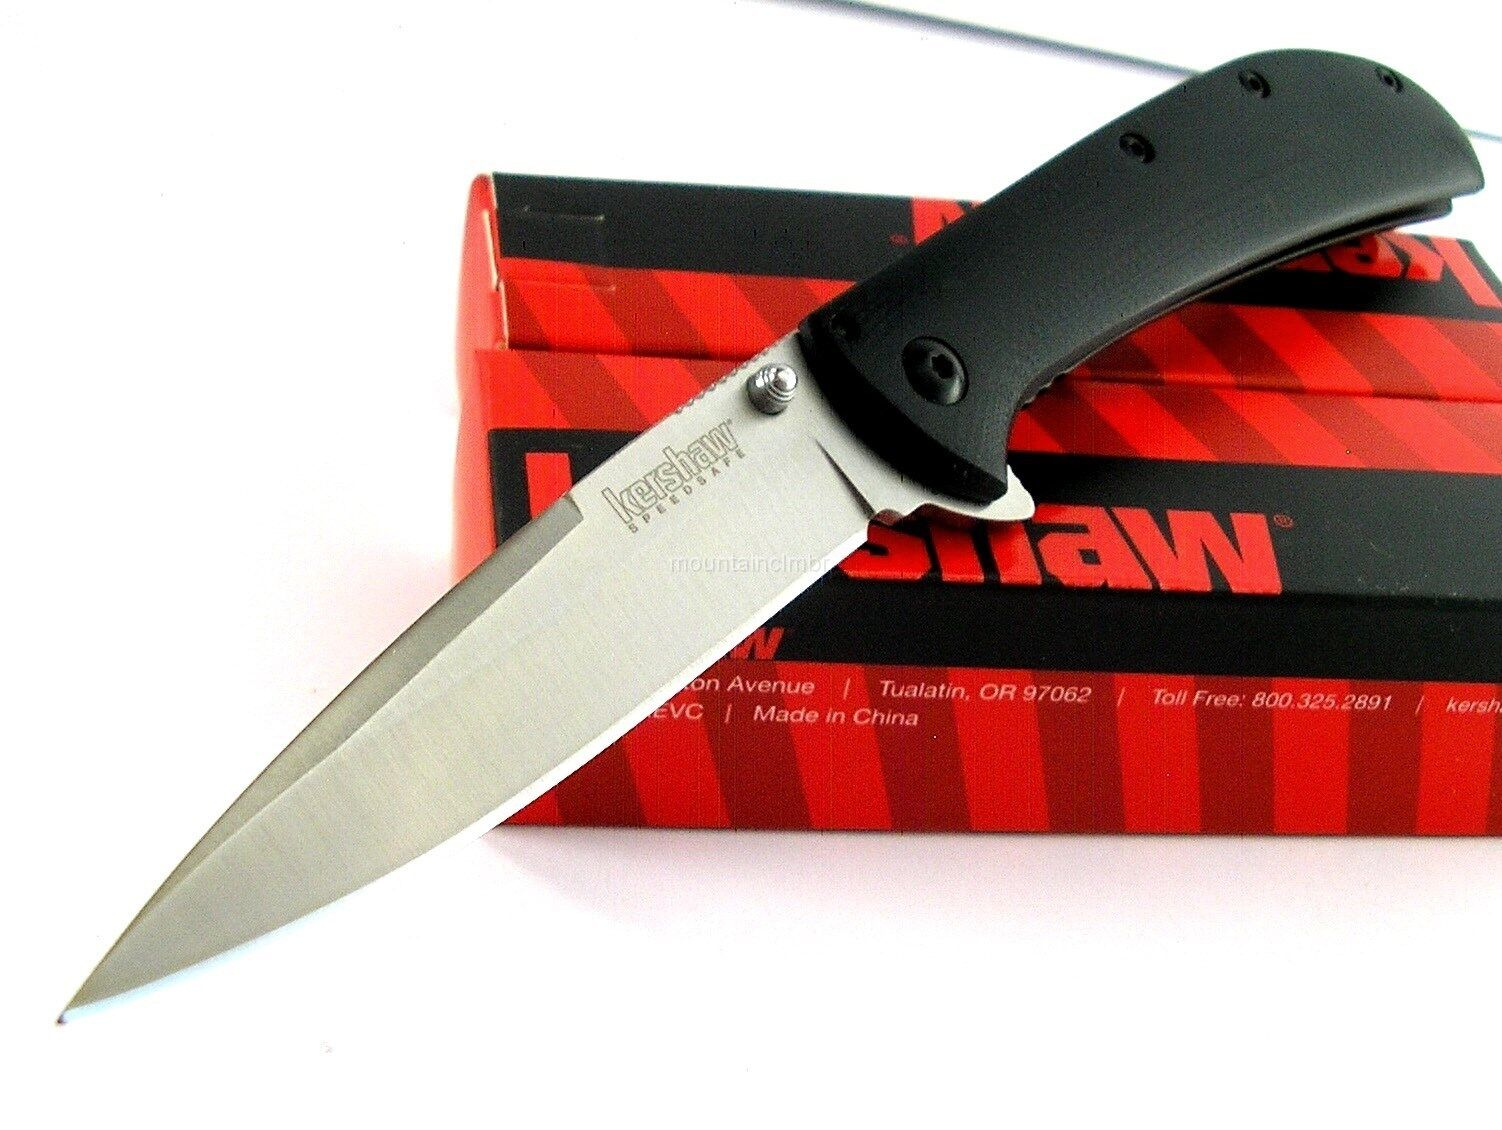 Knife - Kershaw Al Mar AM-4 Flipper Speed Assisted Opening G10 Knife CLAM Pack 2330